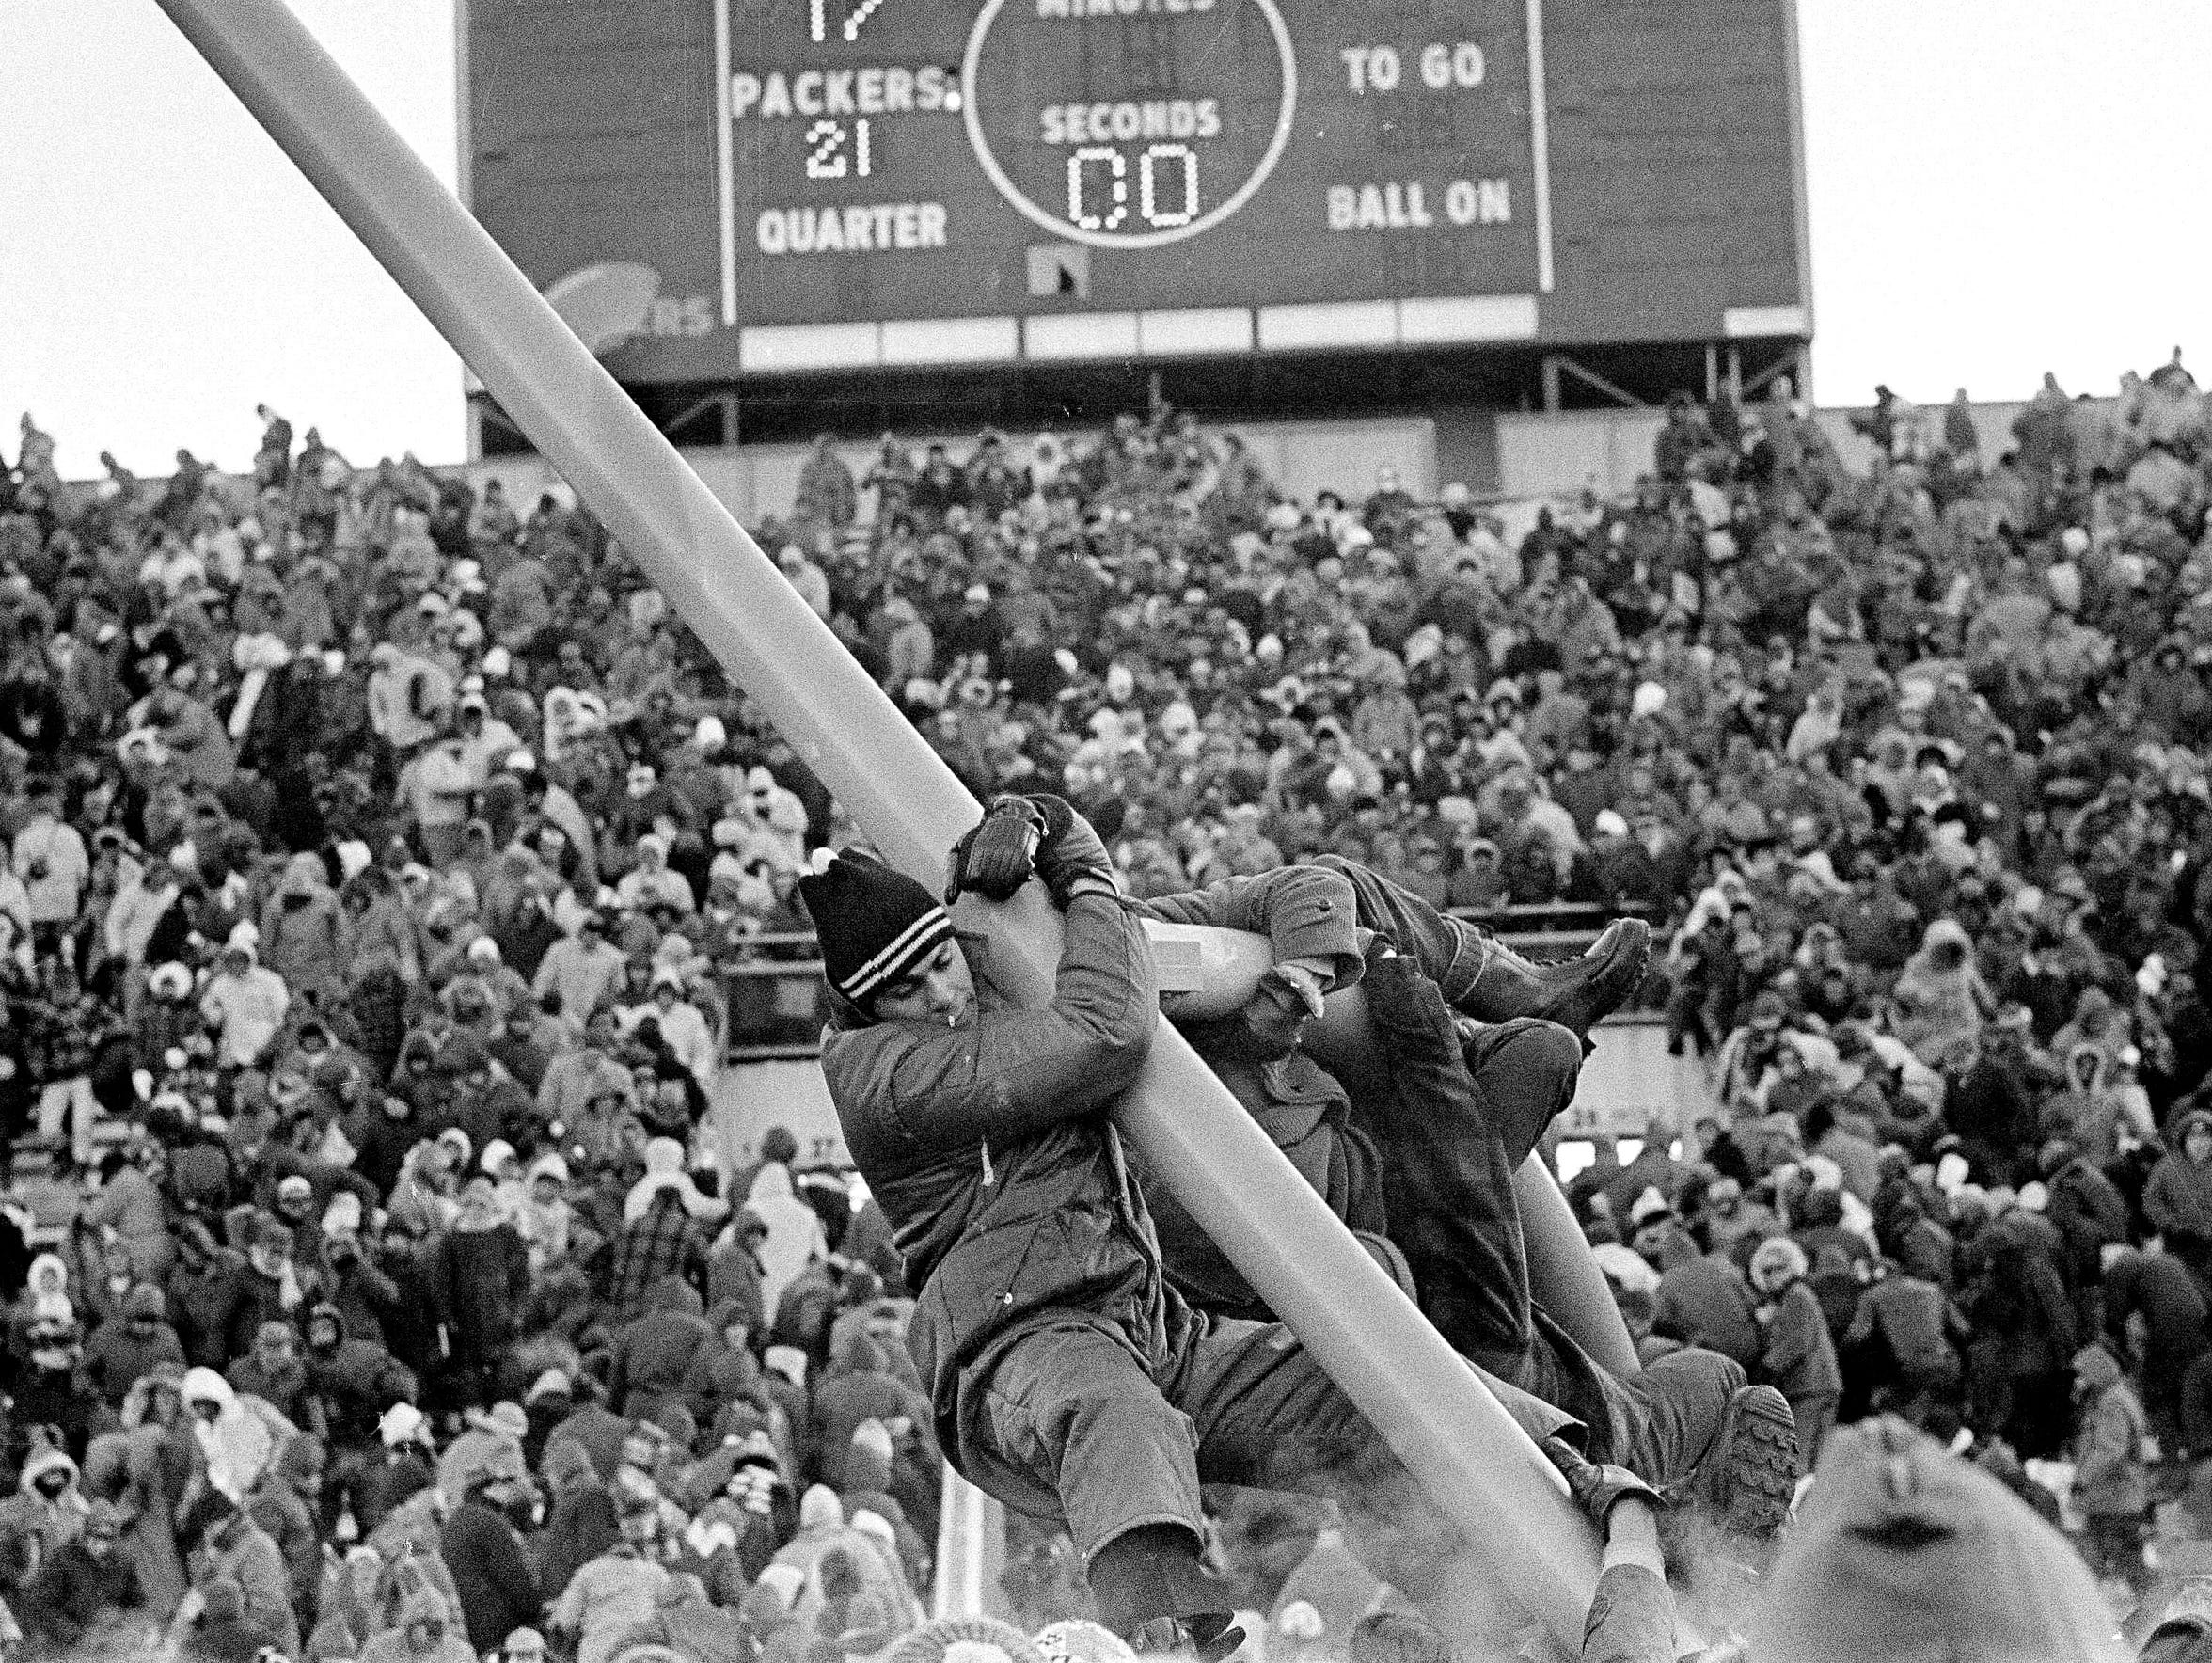 Fans climb on the goal post at Lambeau Field after the Green Bay Packers beat the Dallas Cowboys, 21-17, in the 1967 NFL Championship Game, better known as the Ice Bowl.